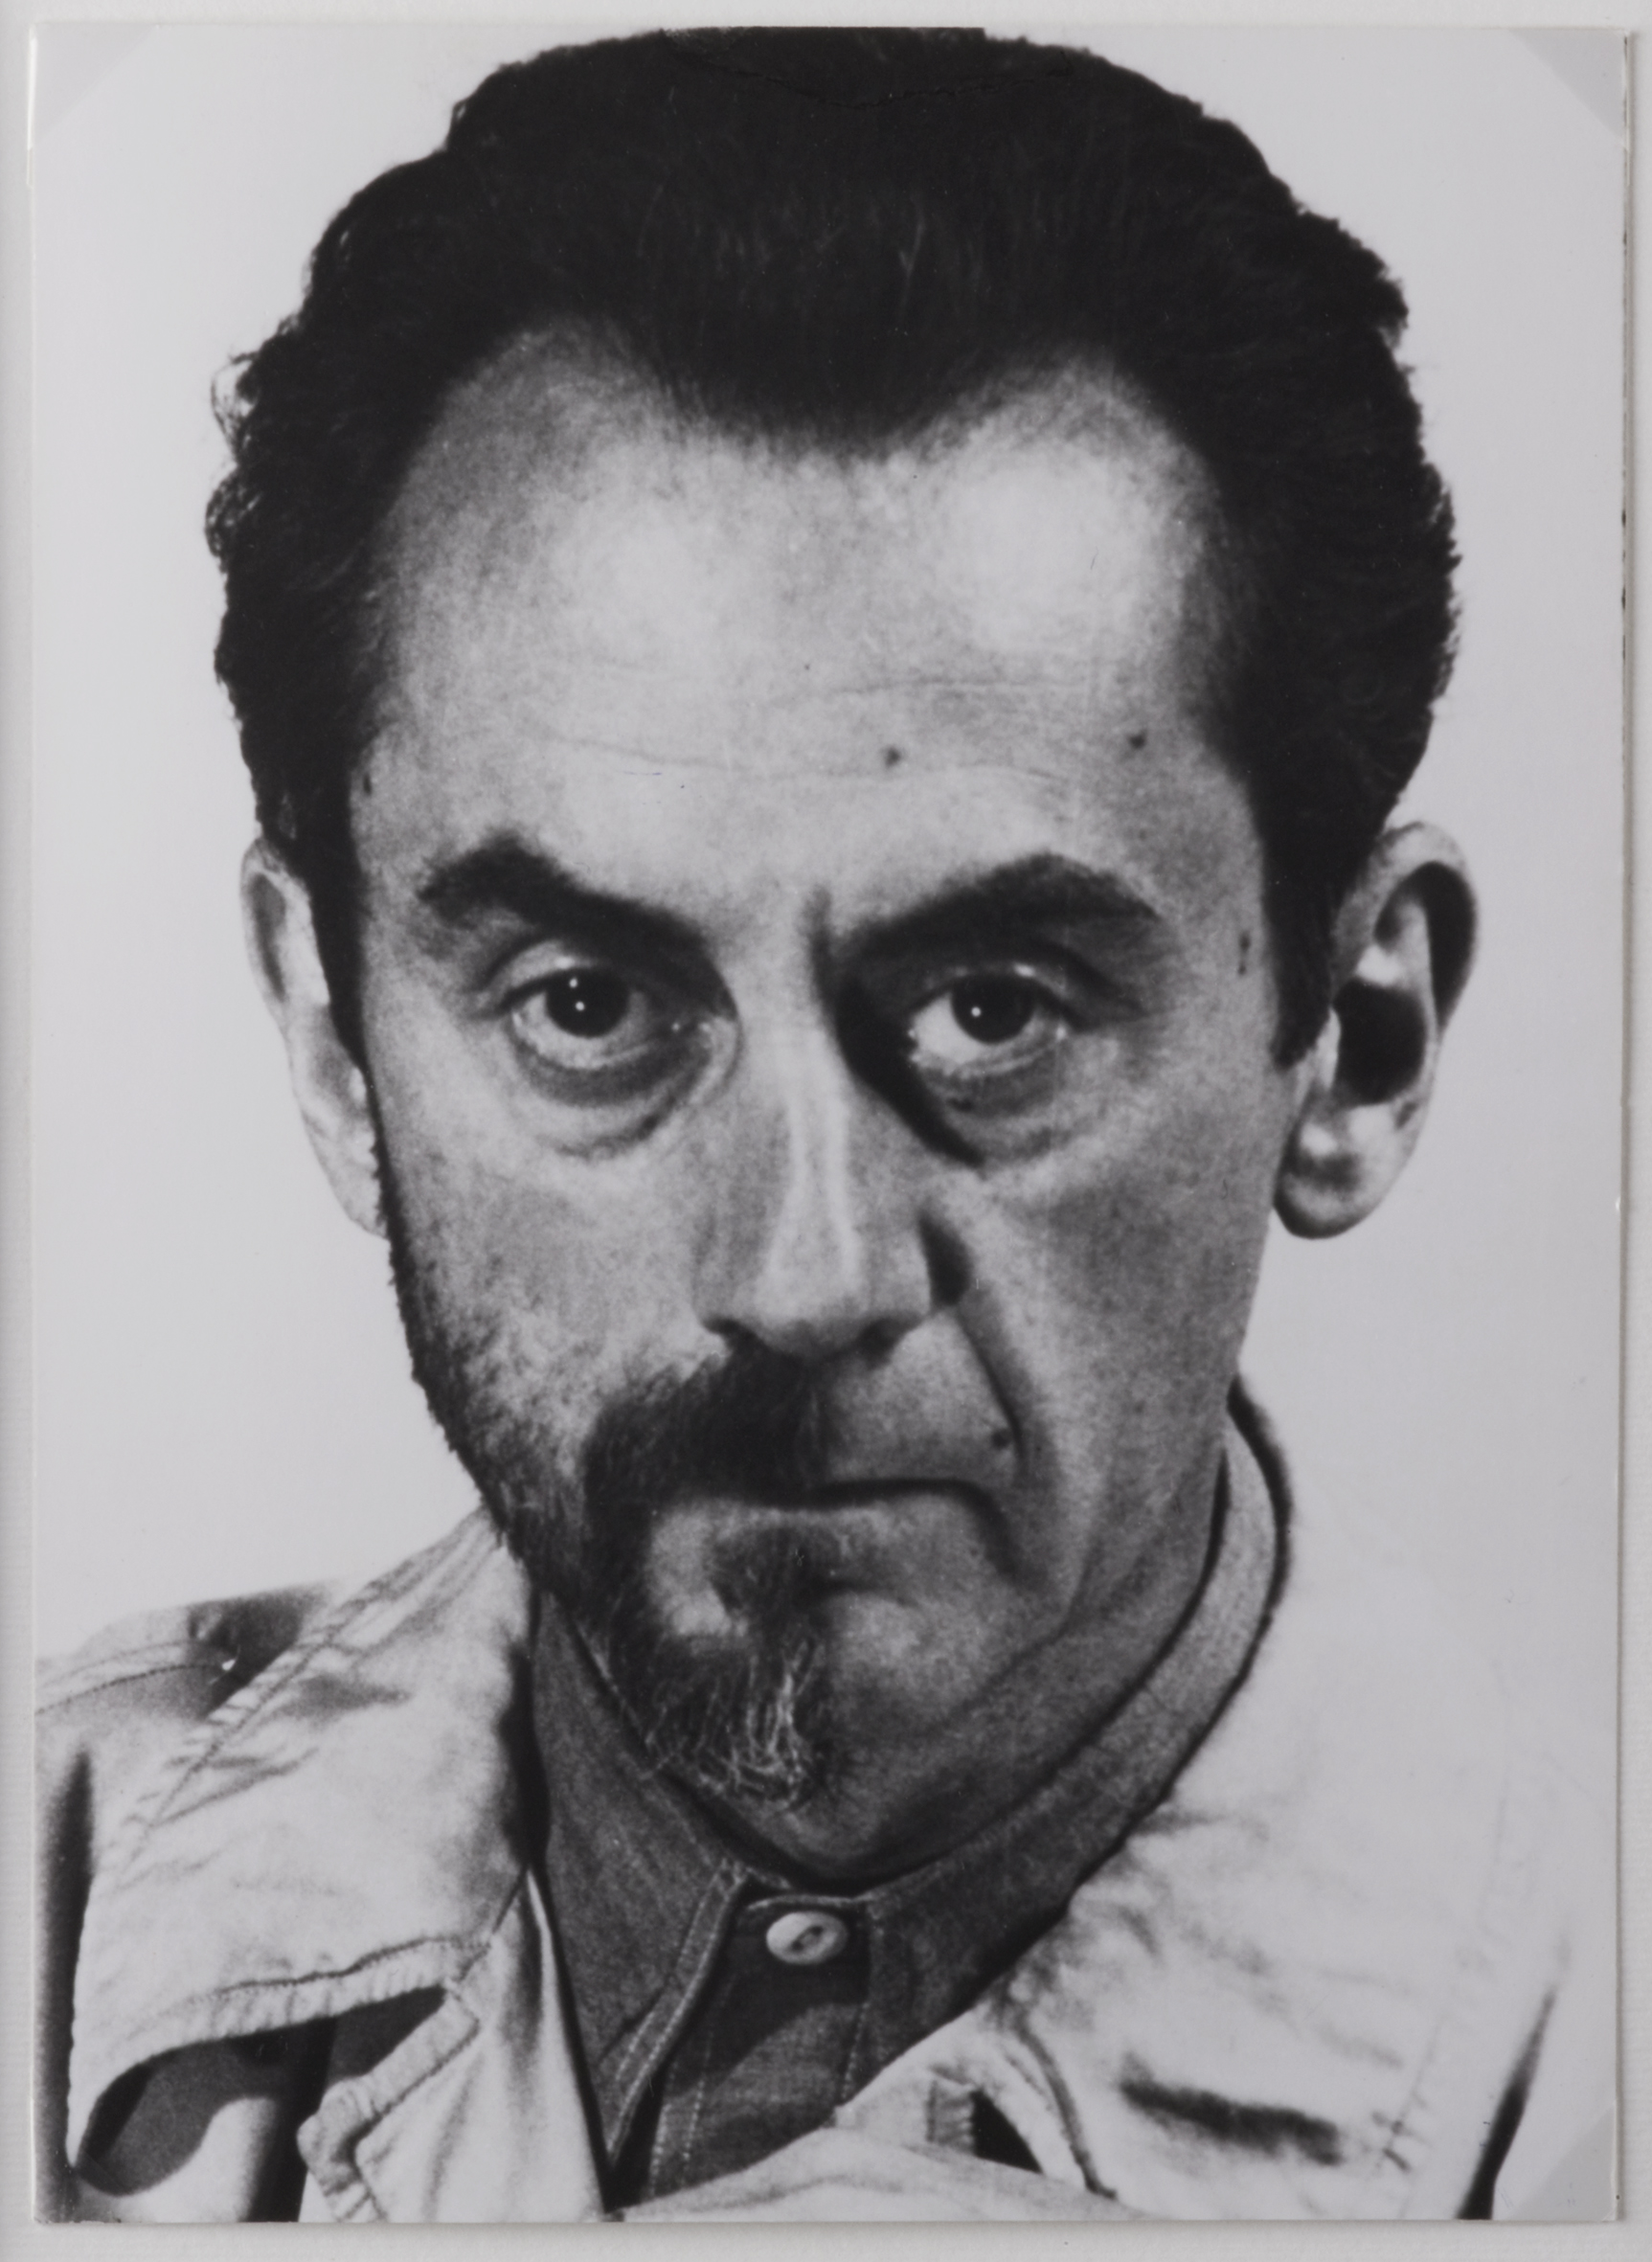 Autoritratto, 1943, fotografia later print del 1972, 18 x 12,8 cm, collezione privata, Courtesy Fondazione Marconi, -®MAN RAY TRUST _ ADAGP, Paris, By SIAE 2014